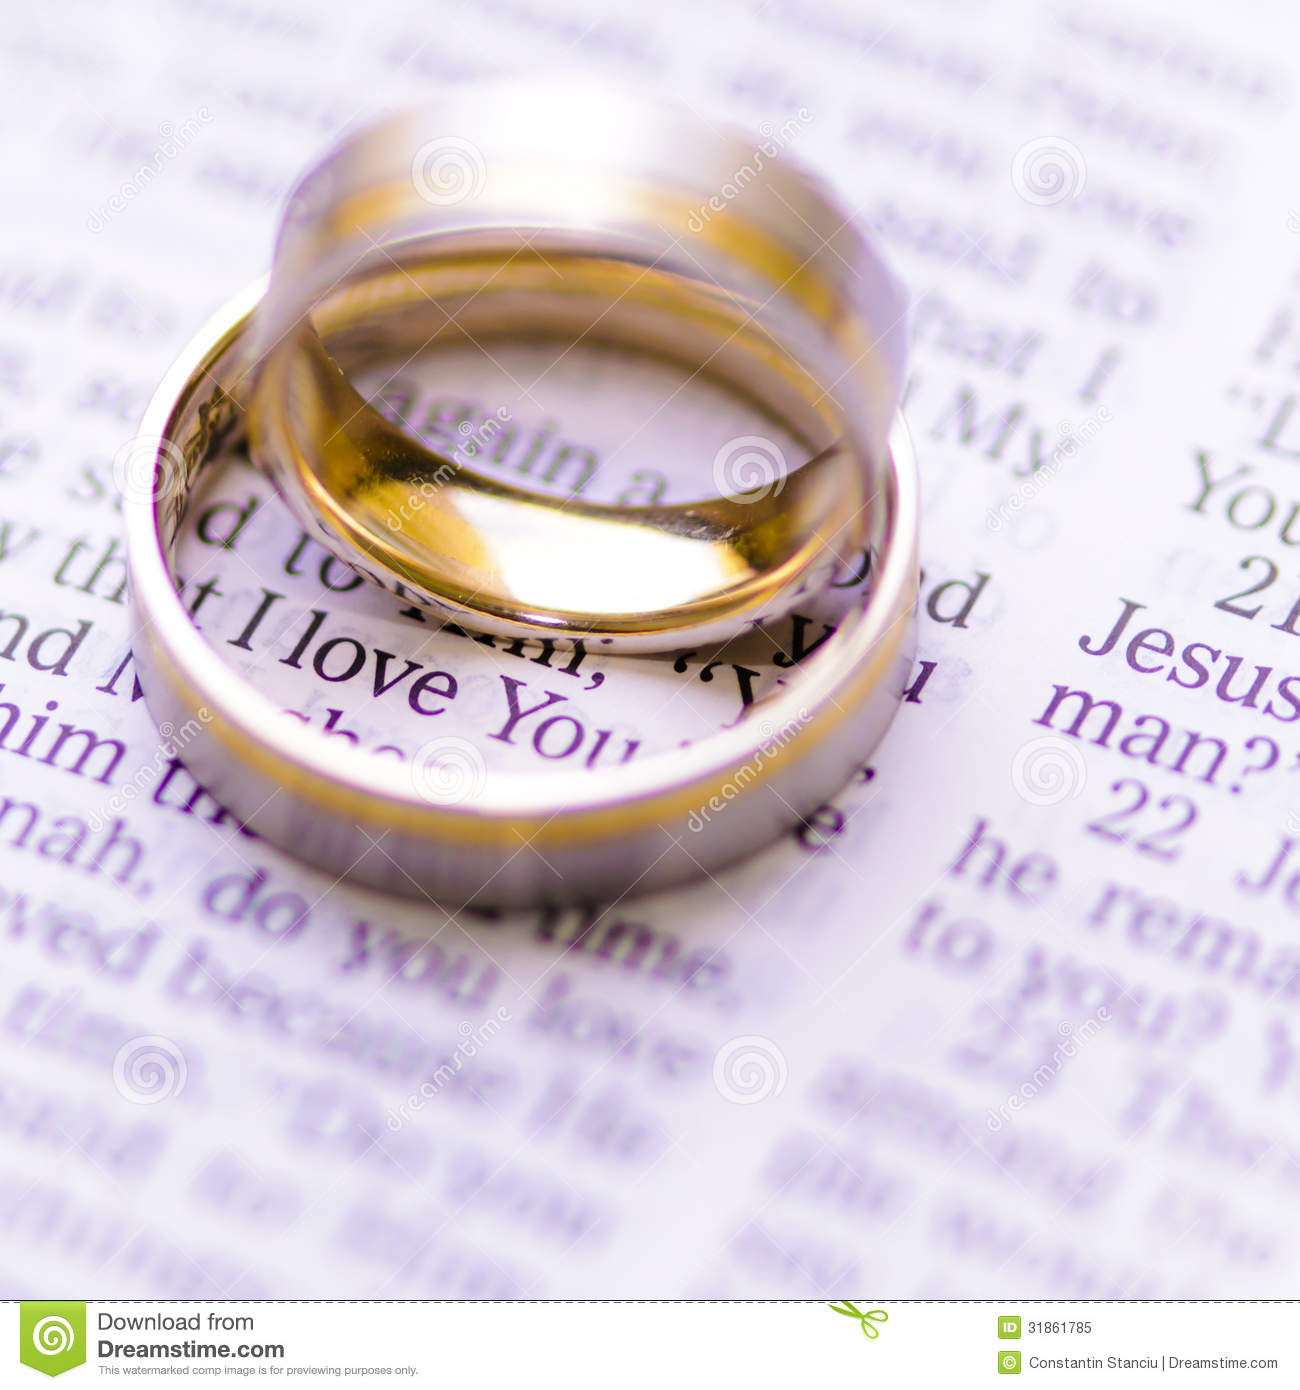 Wedding rings on a bible with i love you message royalty for Wedding ring meaning bible